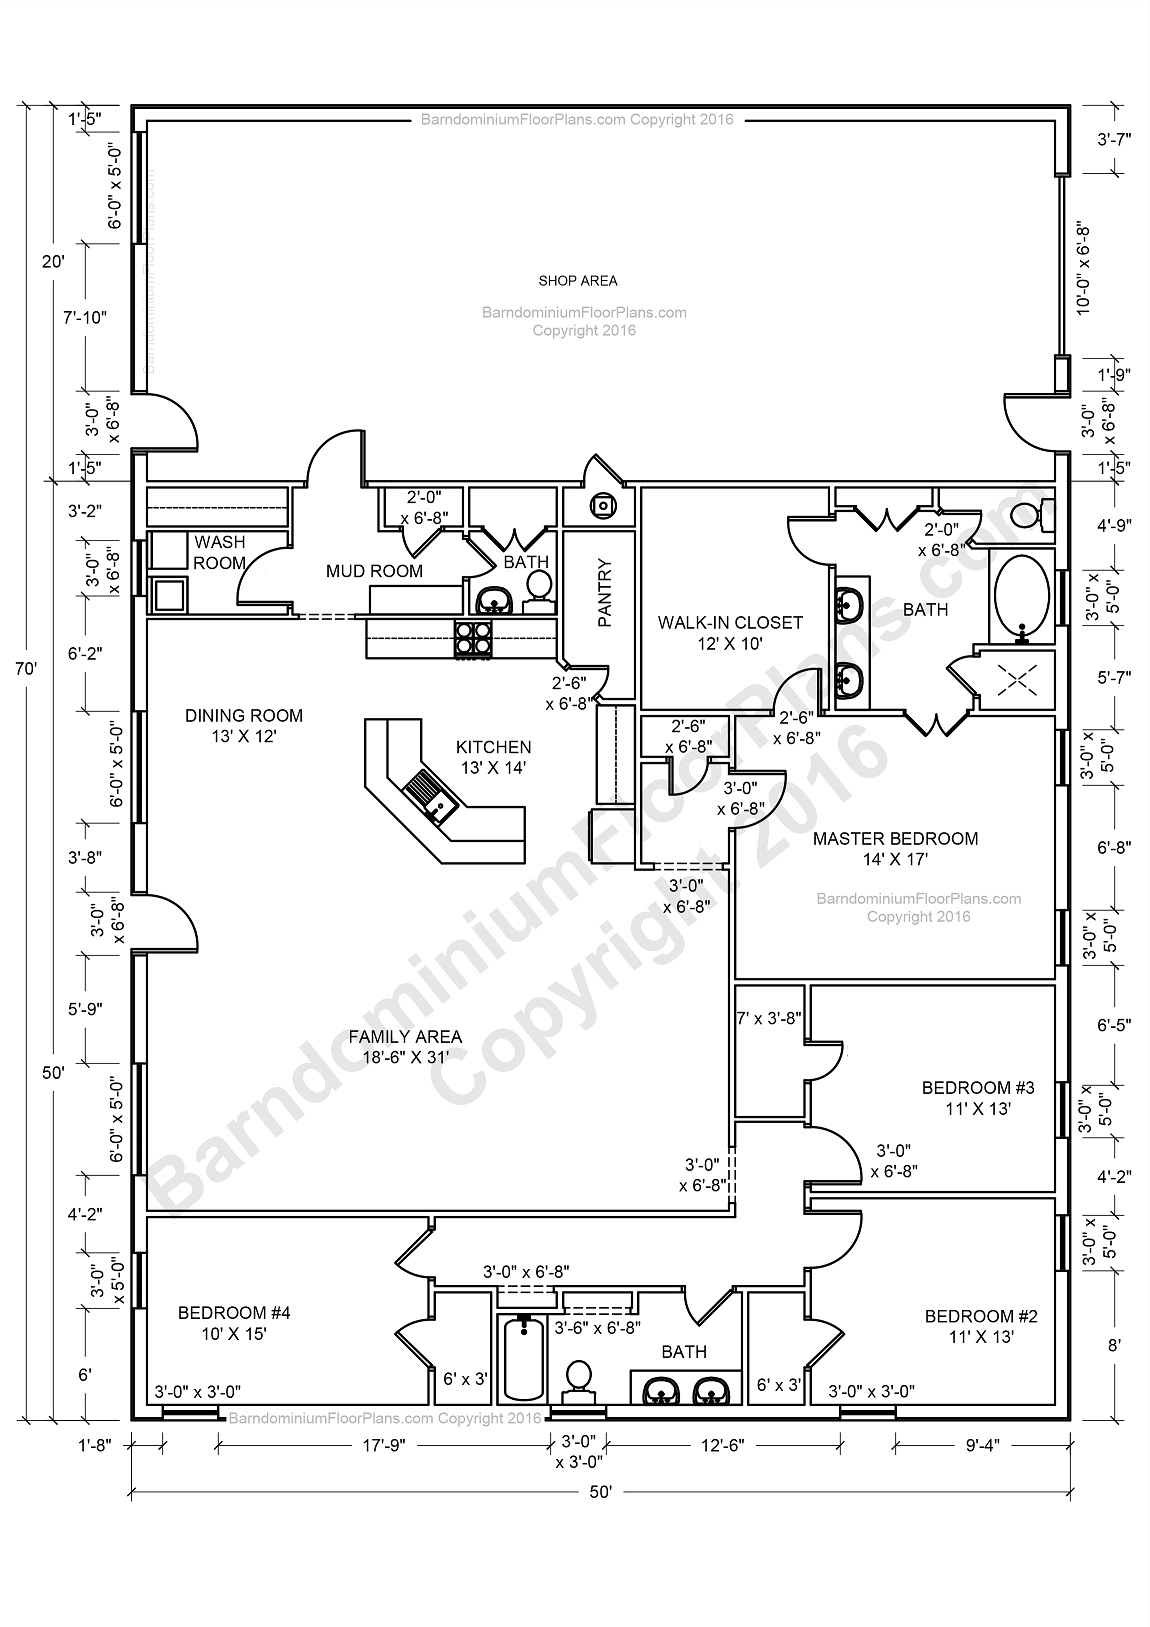 BEAST Metal Building: Barndominium Floor Plans and Design Ideas ...